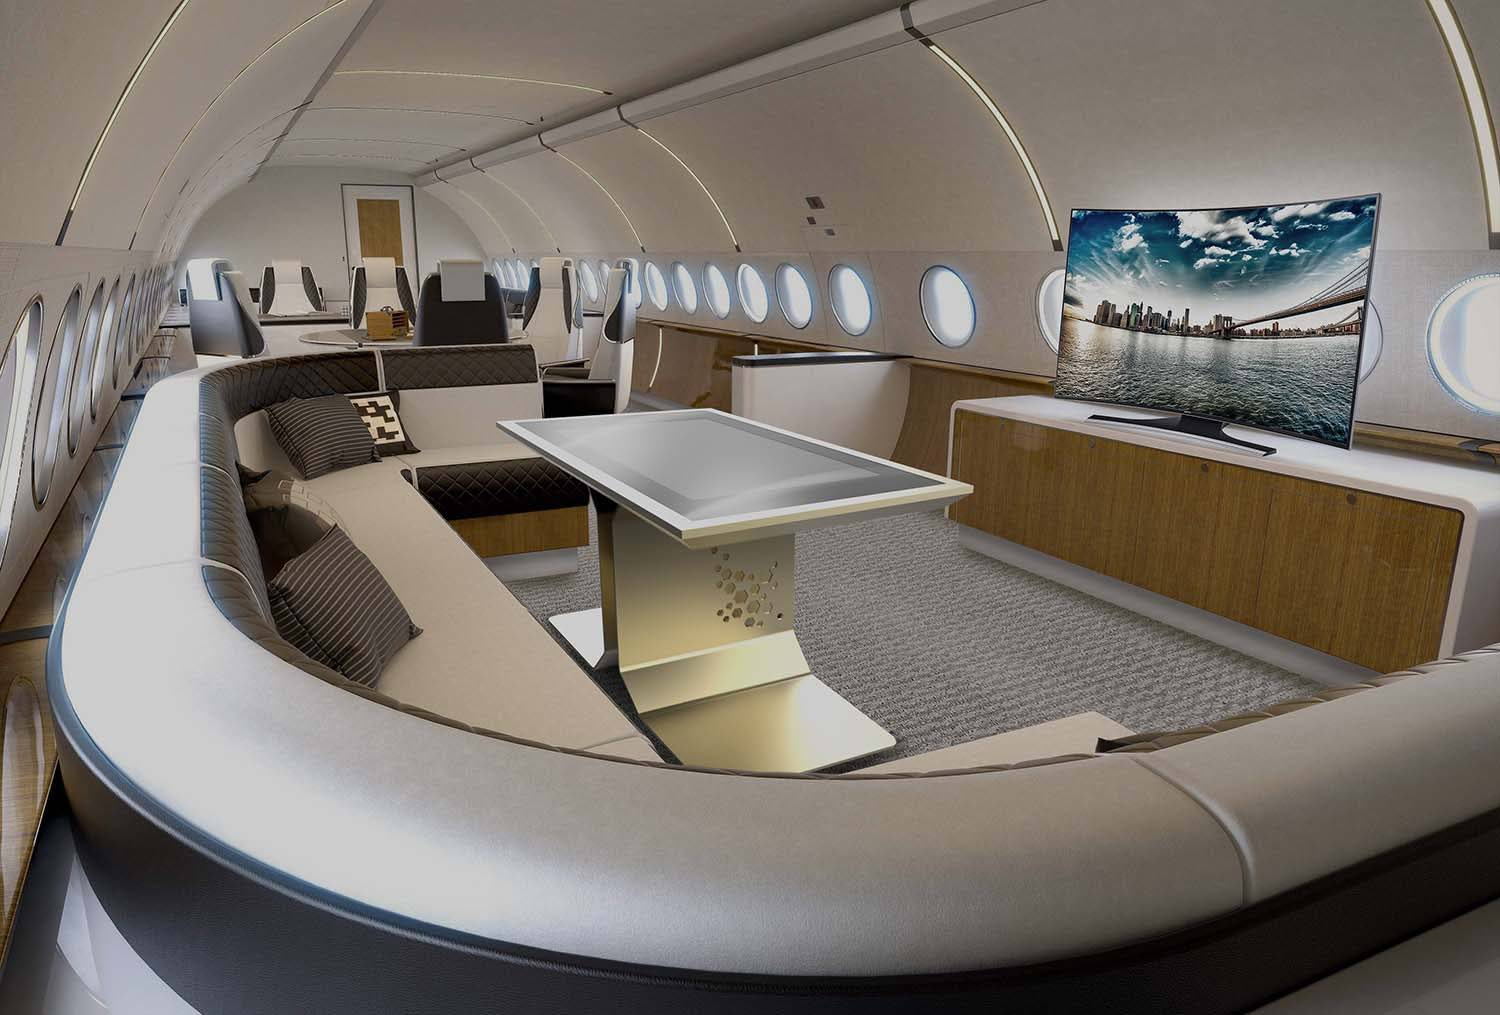 Table-D-Table-Executive-Airplane